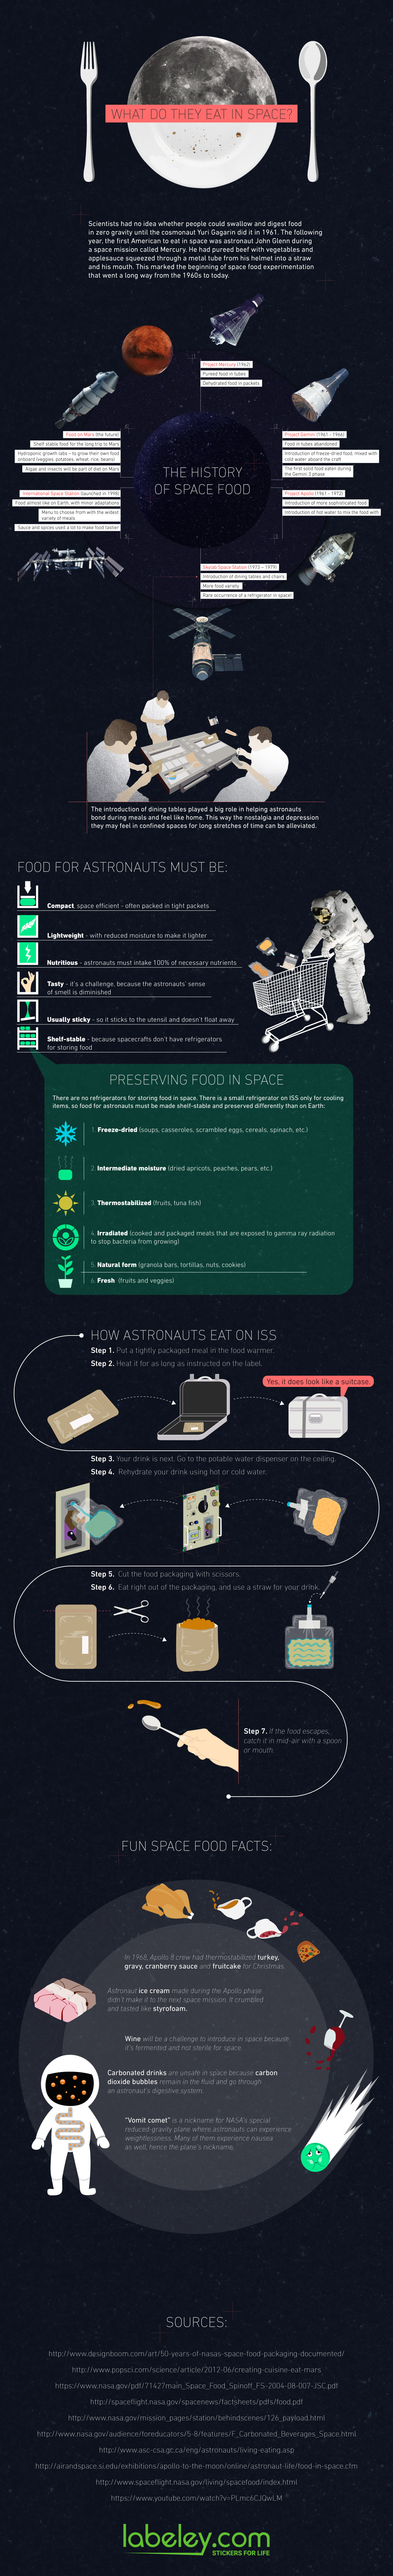 Infographic - Evolution of Food in Space: From Bland Puree to Almost Like on Earth